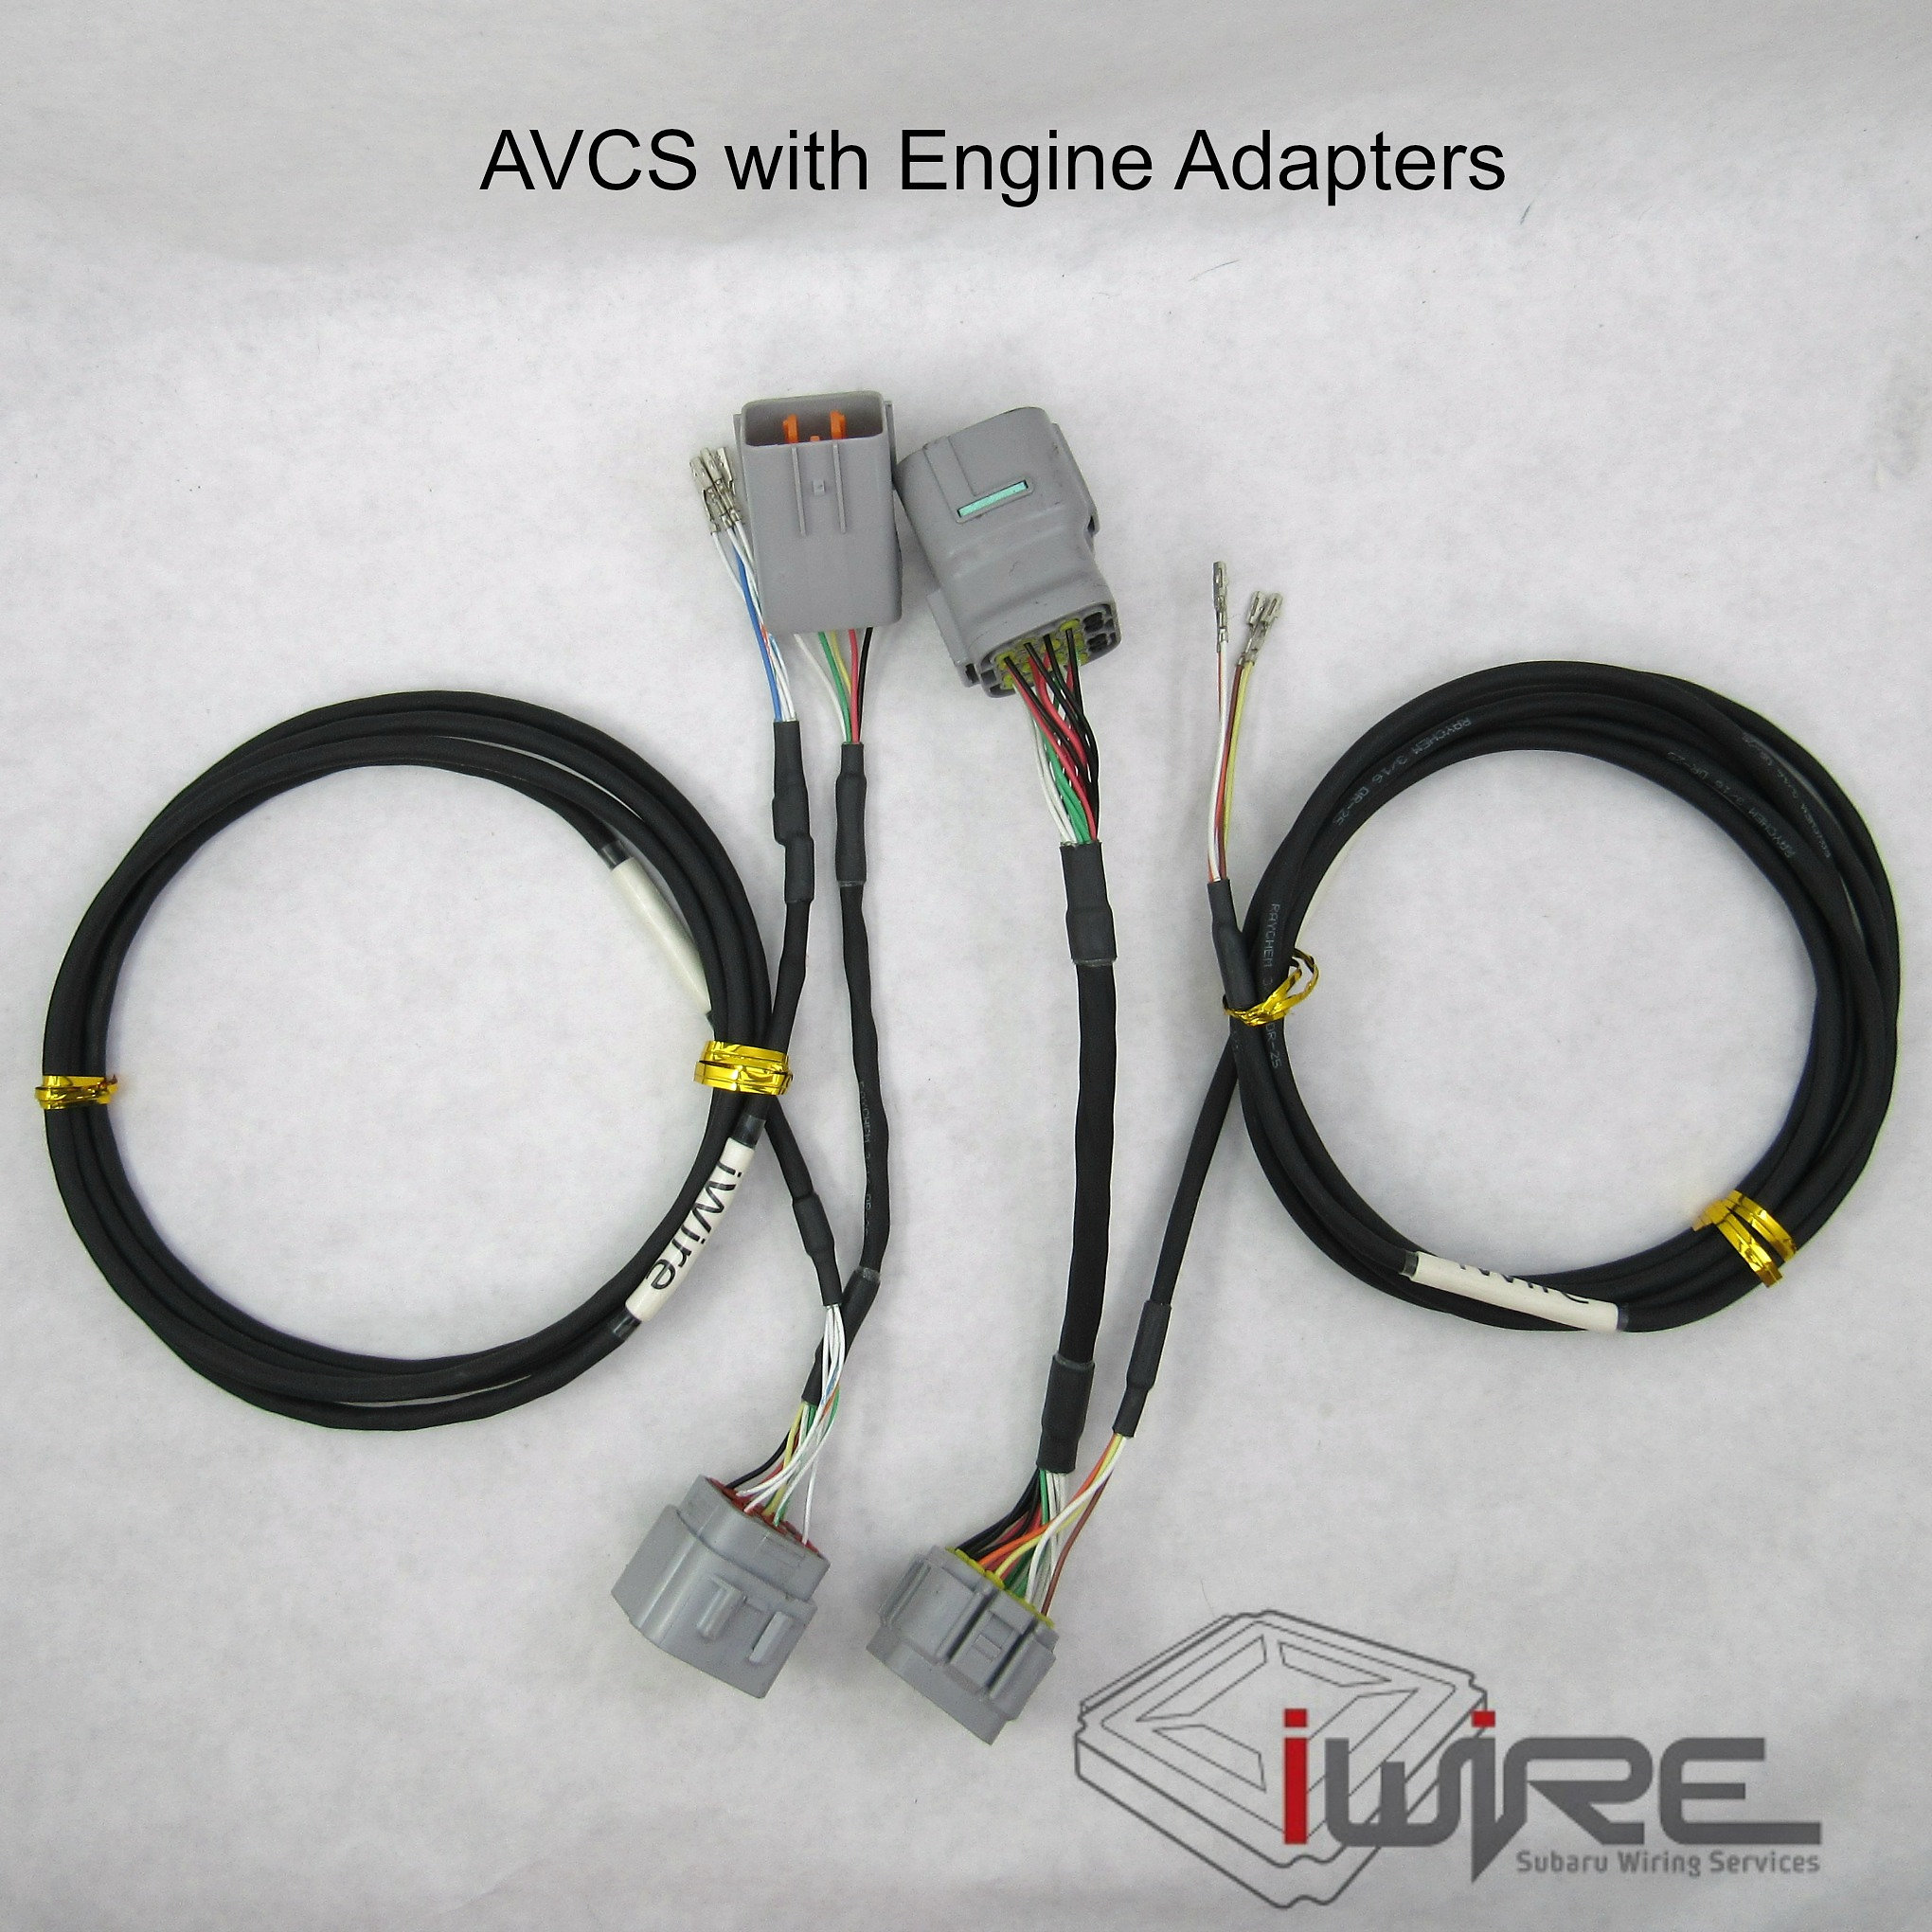 Subaru AVCS Bulkhead Wiring Kit Plug and Play ...